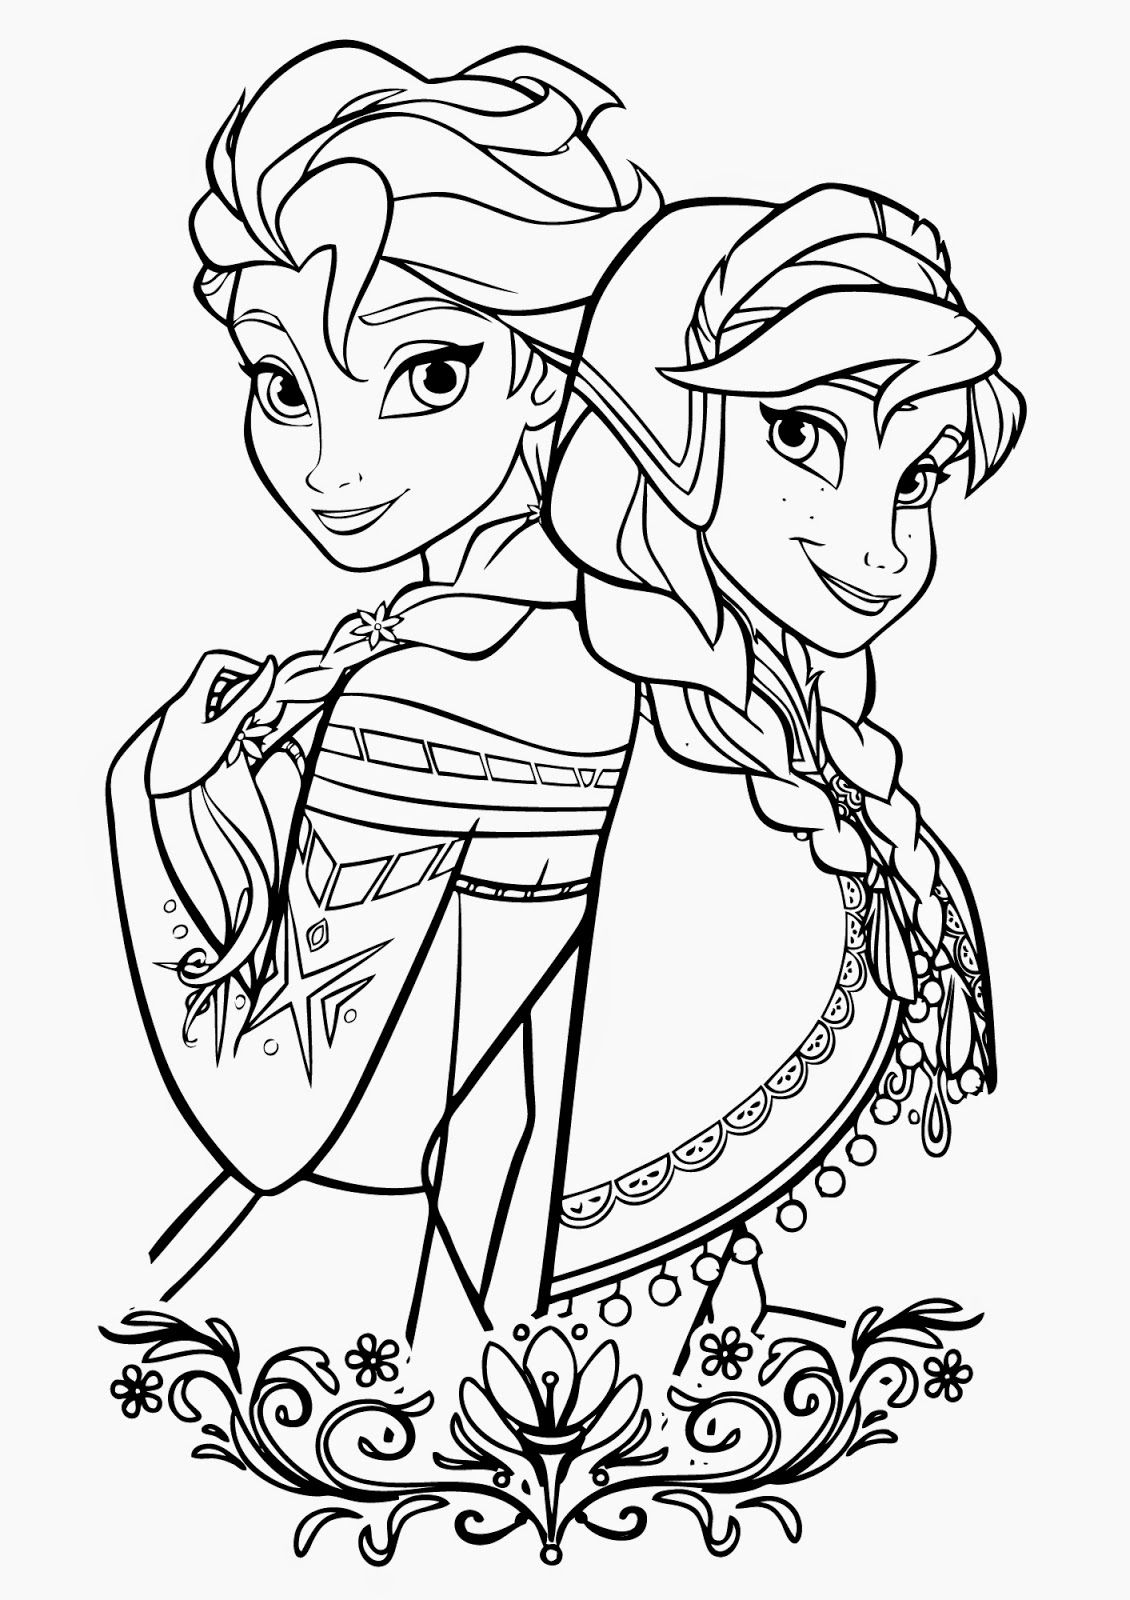 P 40 coloring pages - Explore Frozen Coloring Sheets And More